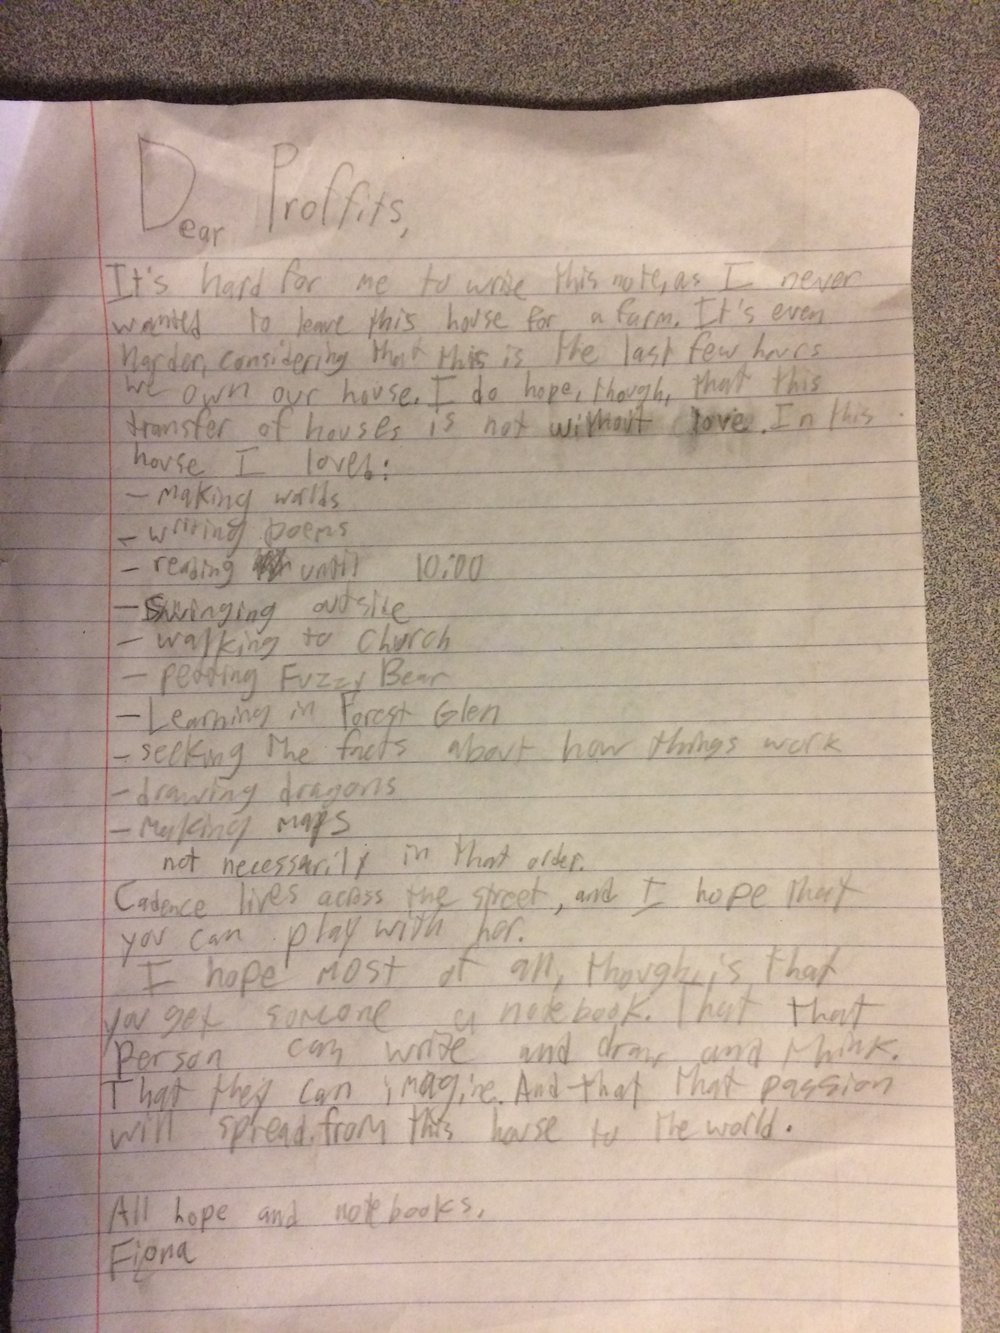 Fiona's lovely letter--mixed feelings, expressed with great kindness.